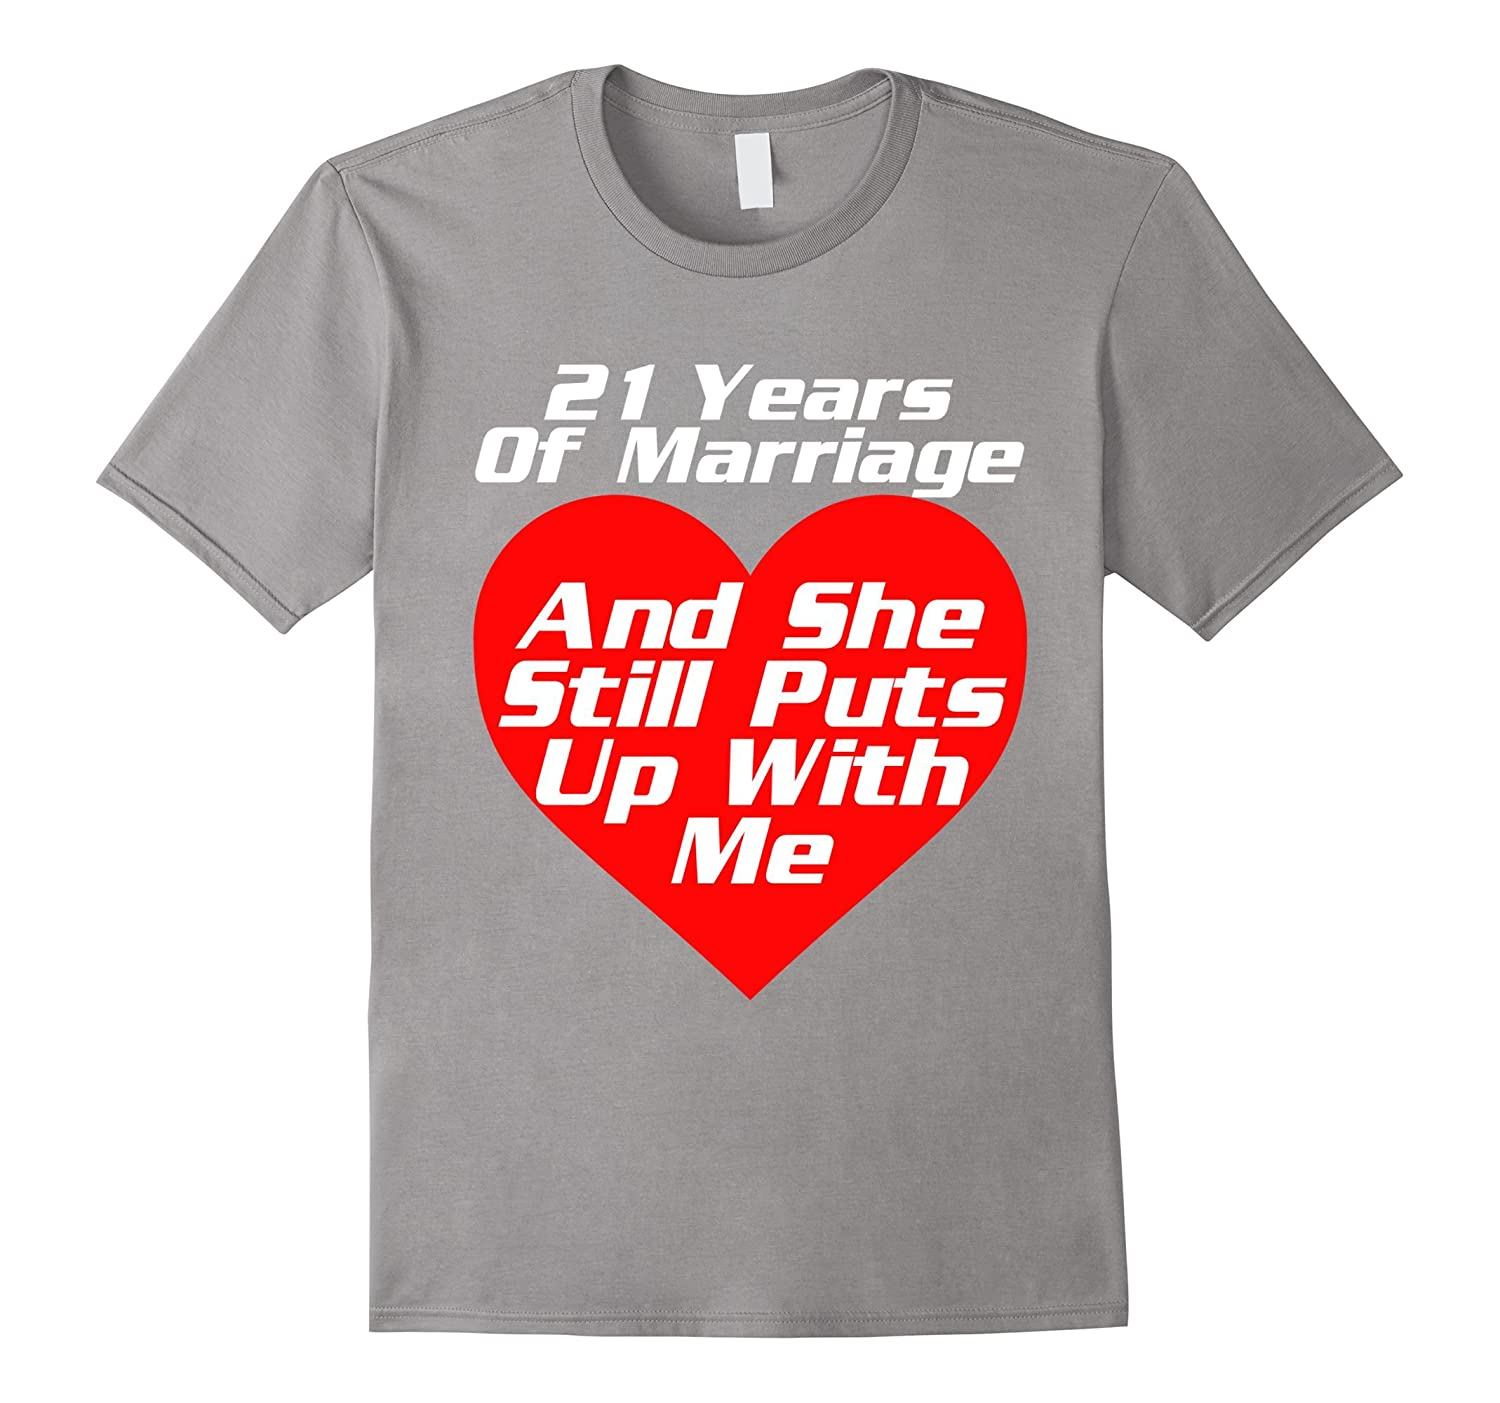 21st Wedding Anniversary.21 Years 21st Wedding Anniversary Gift Shirt Puts Up With Me Rose